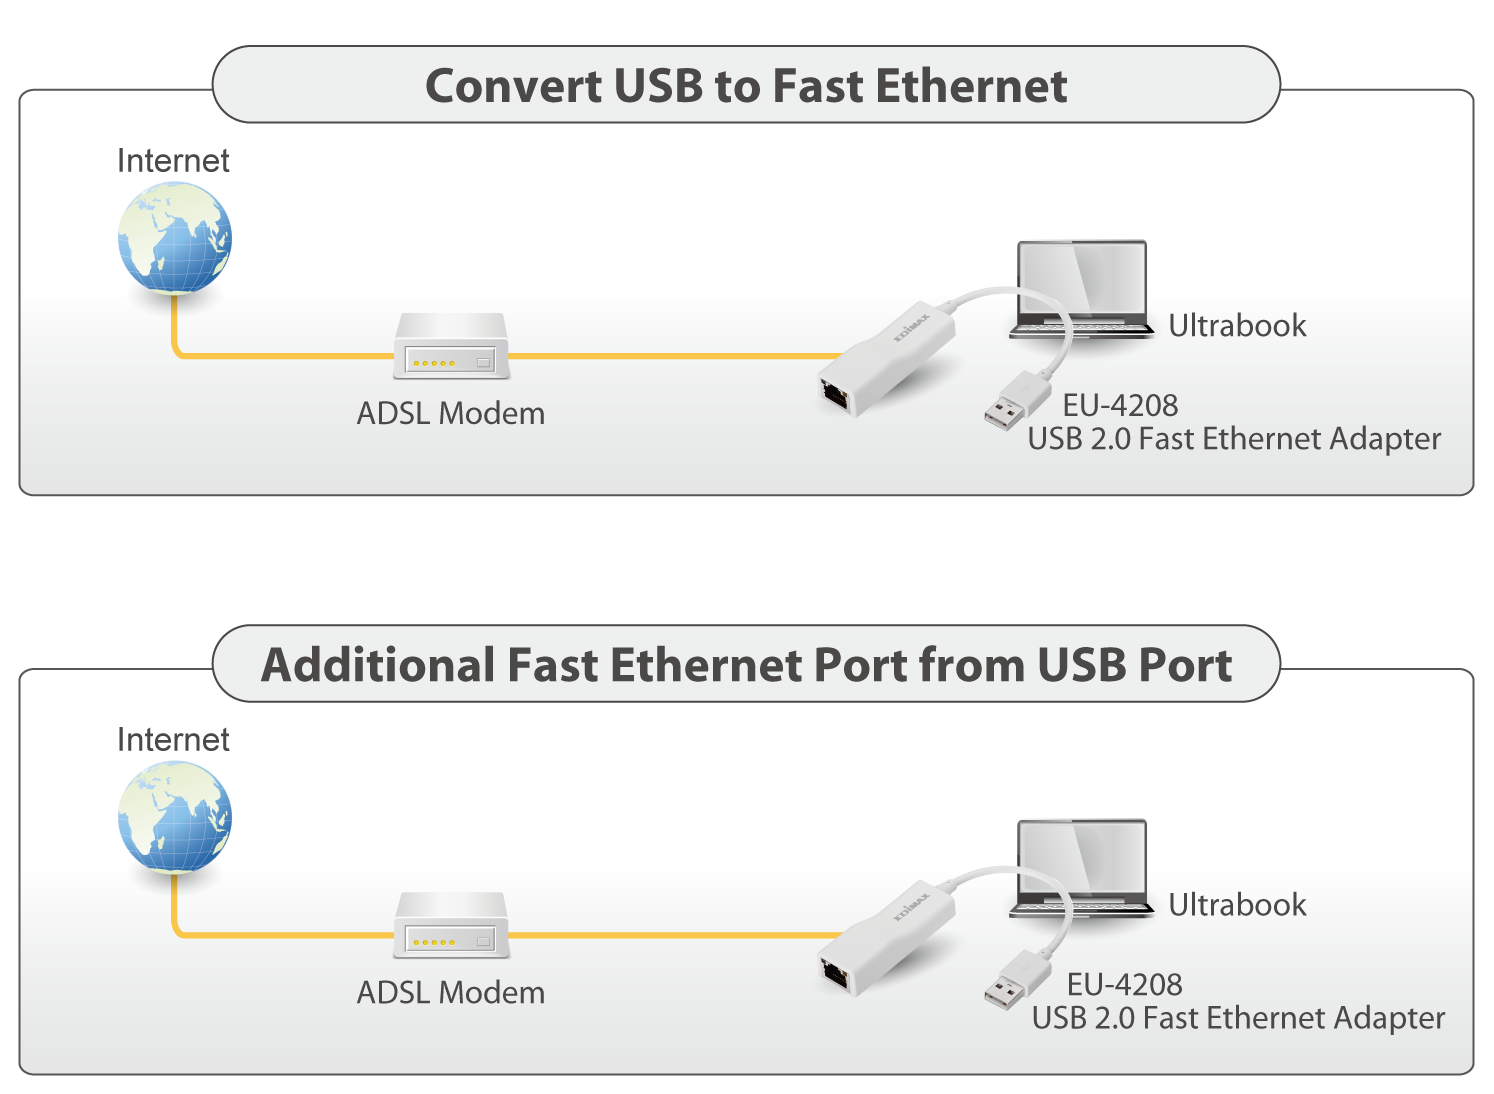 usb 2 0 fast ethernet adapter edimax edimax rh edimax com ethernet to usb converter wiring diagram USB to VGA Wiring-Diagram